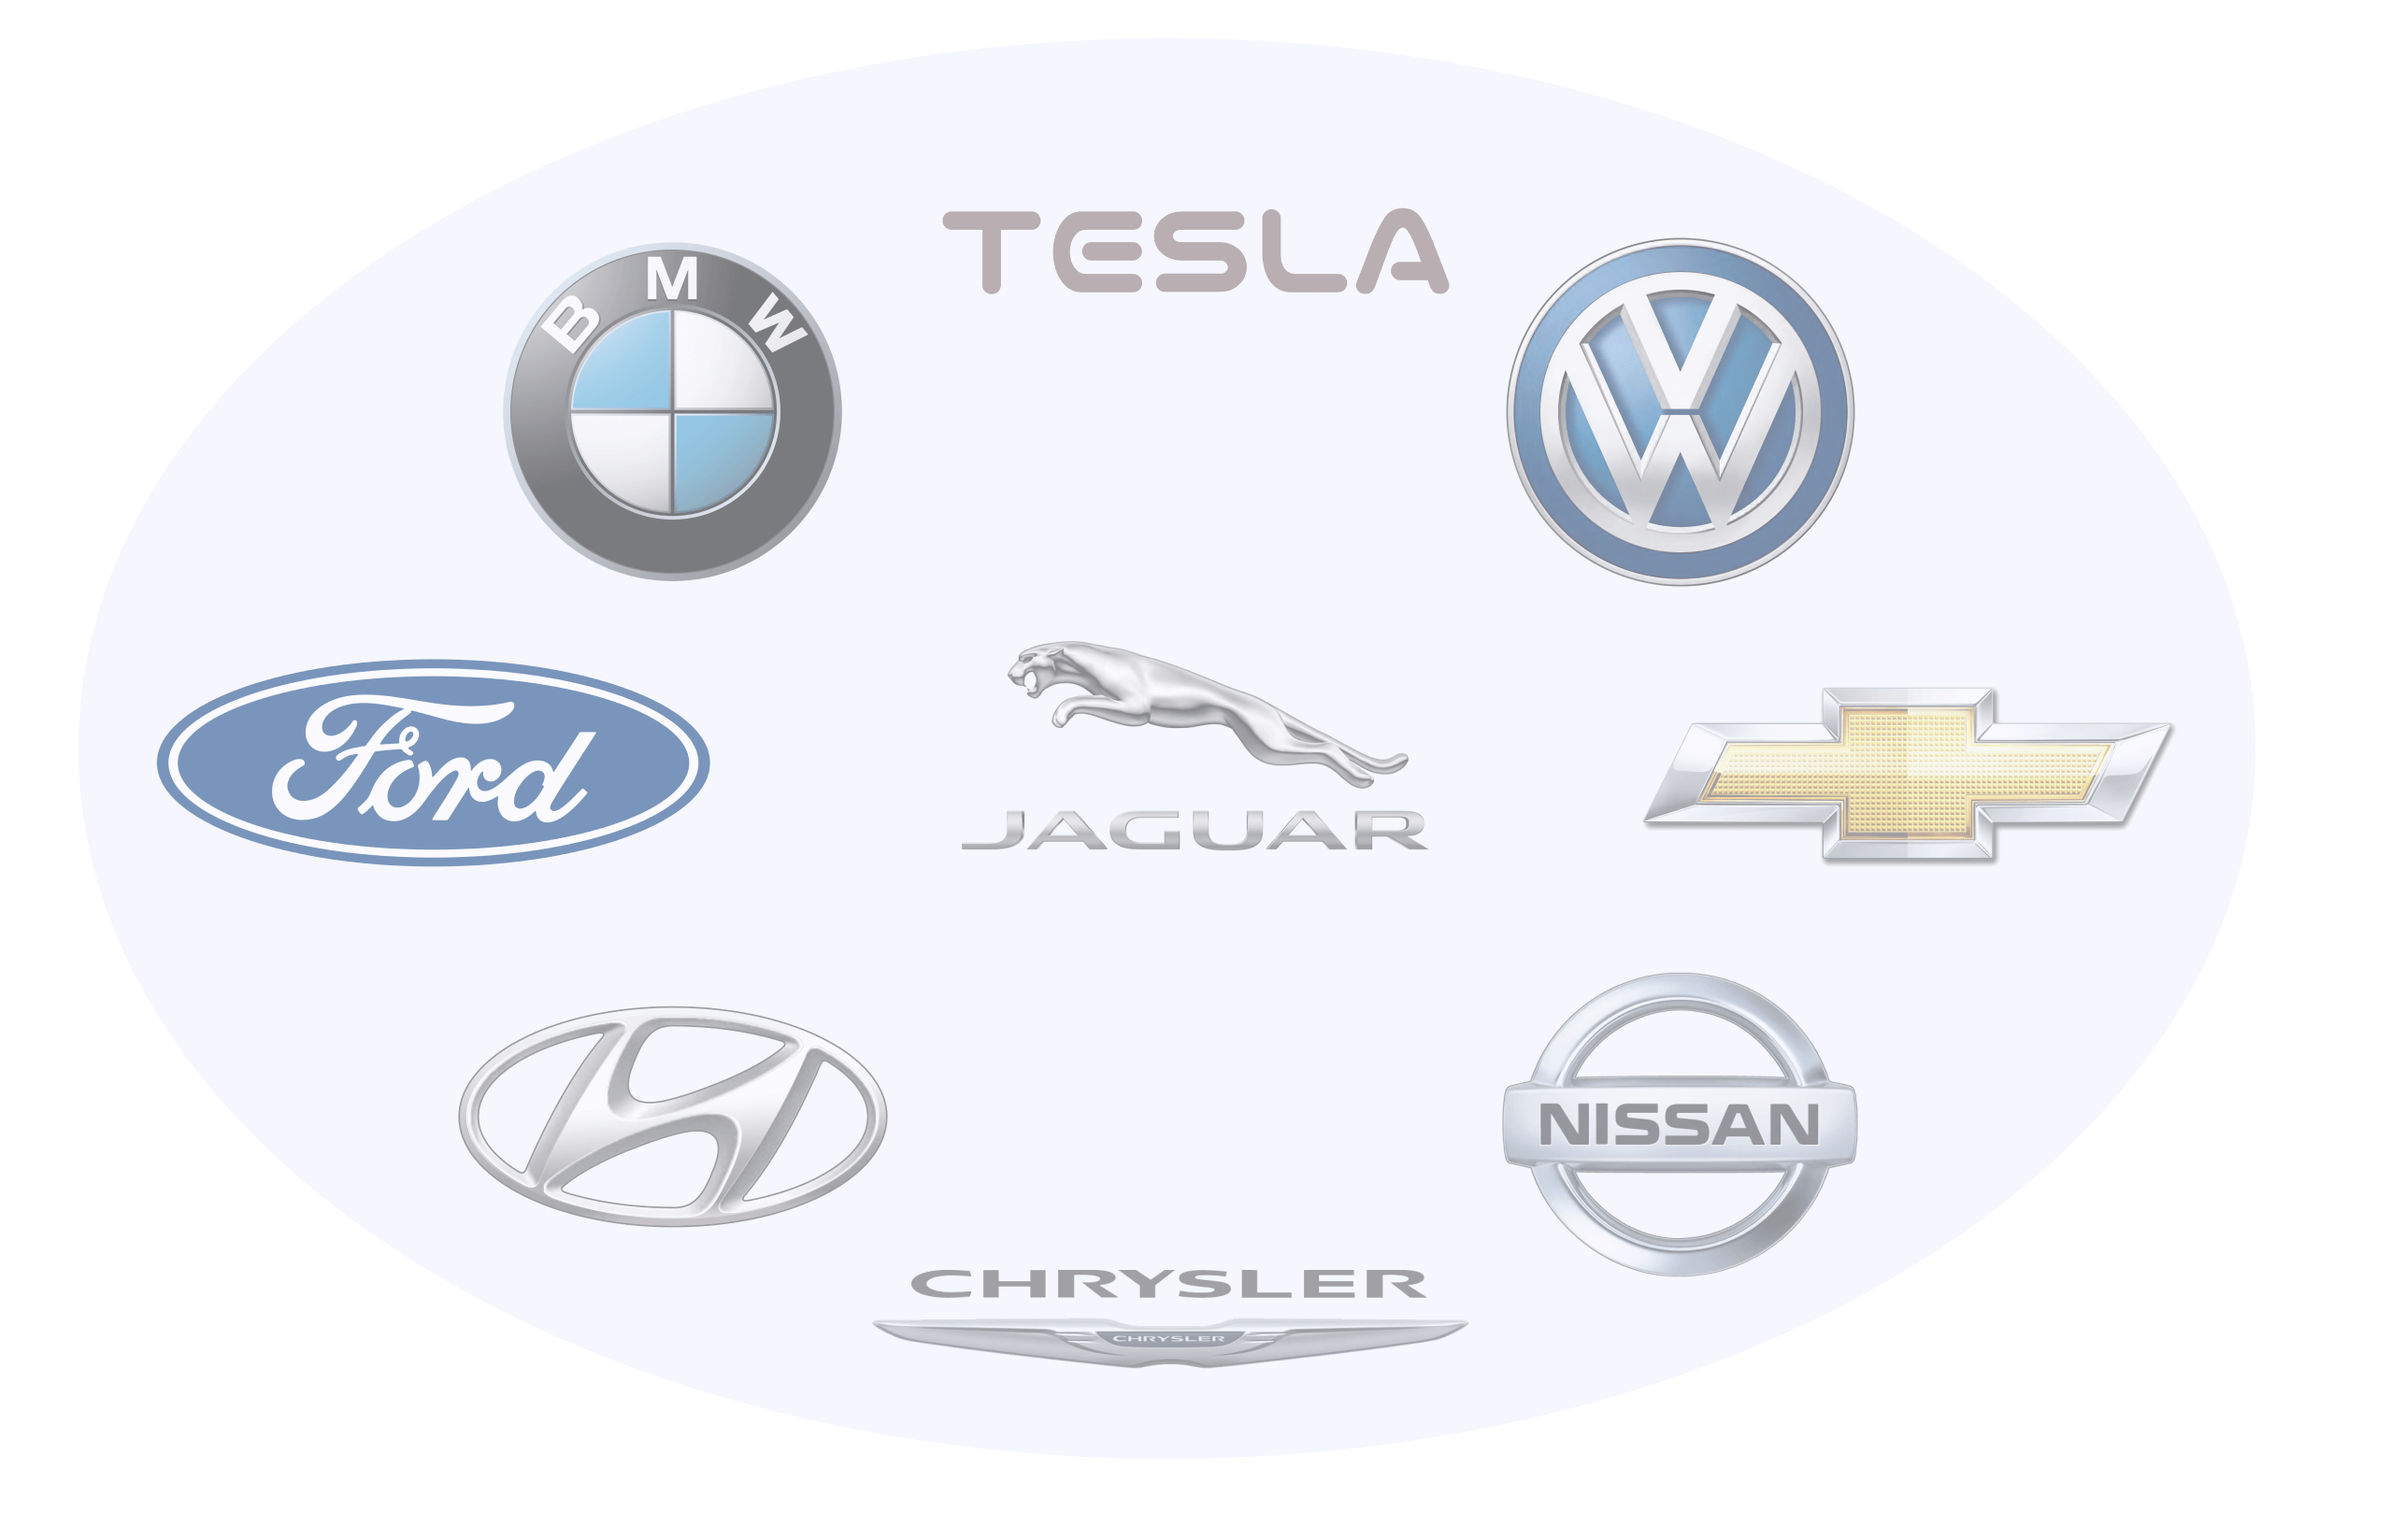 Available electric cars to connect to Recurrent